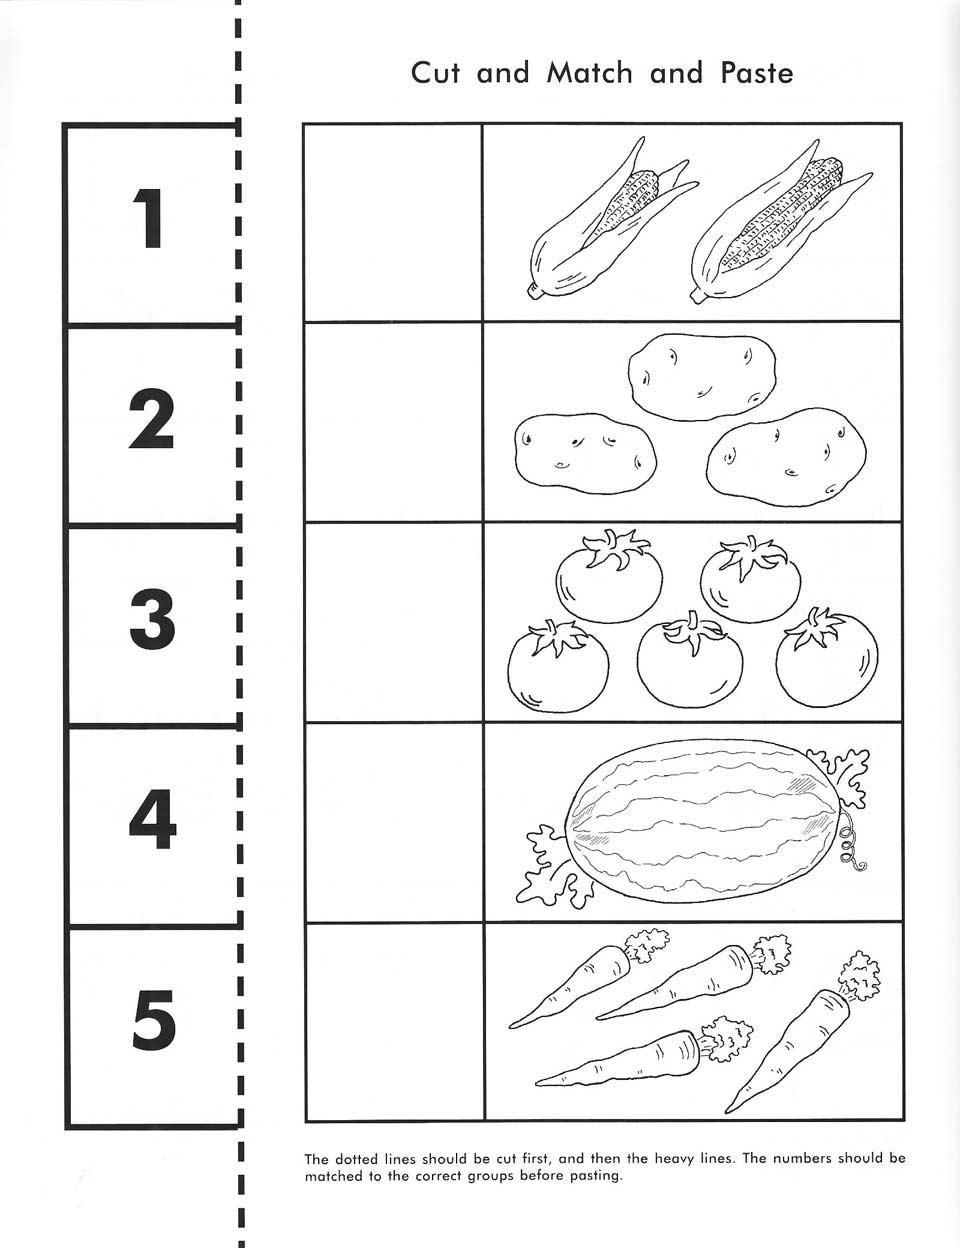 Free Printable Cut And Paste Educational Worksheets For